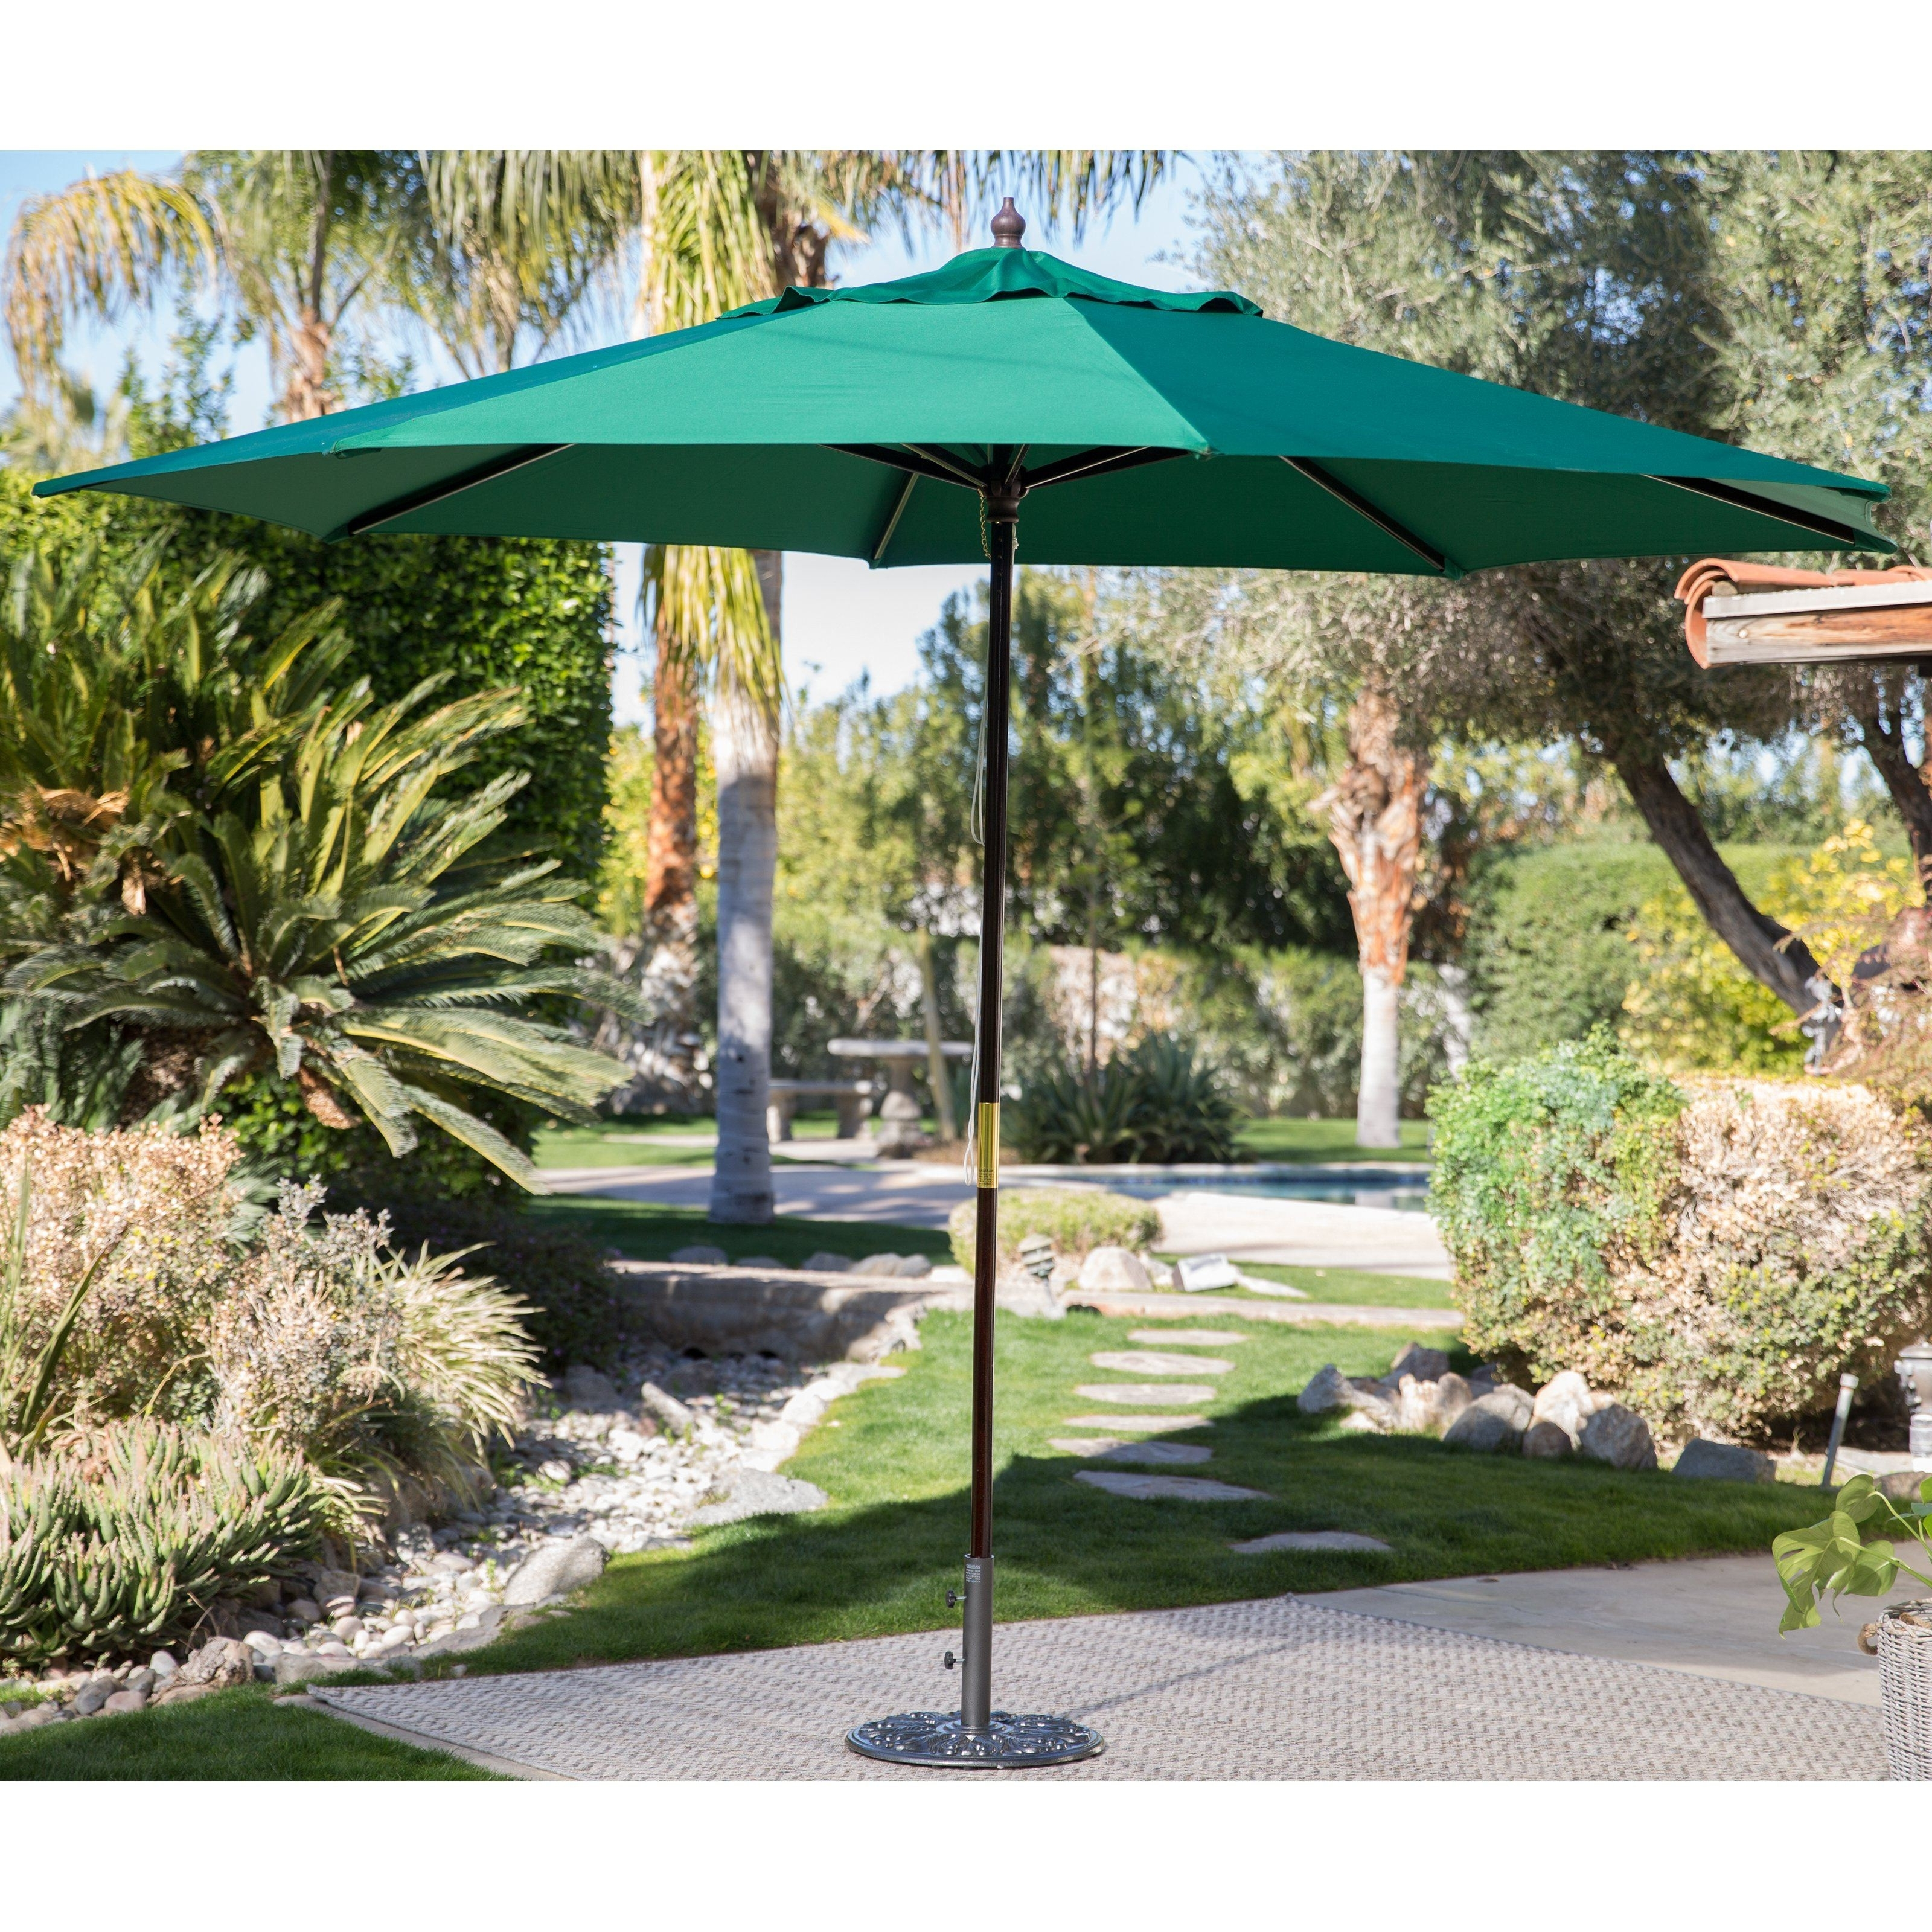 Green Patio Umbrellas Throughout Famous Coral Coast 8 X 11 Ft (View 14 of 20)